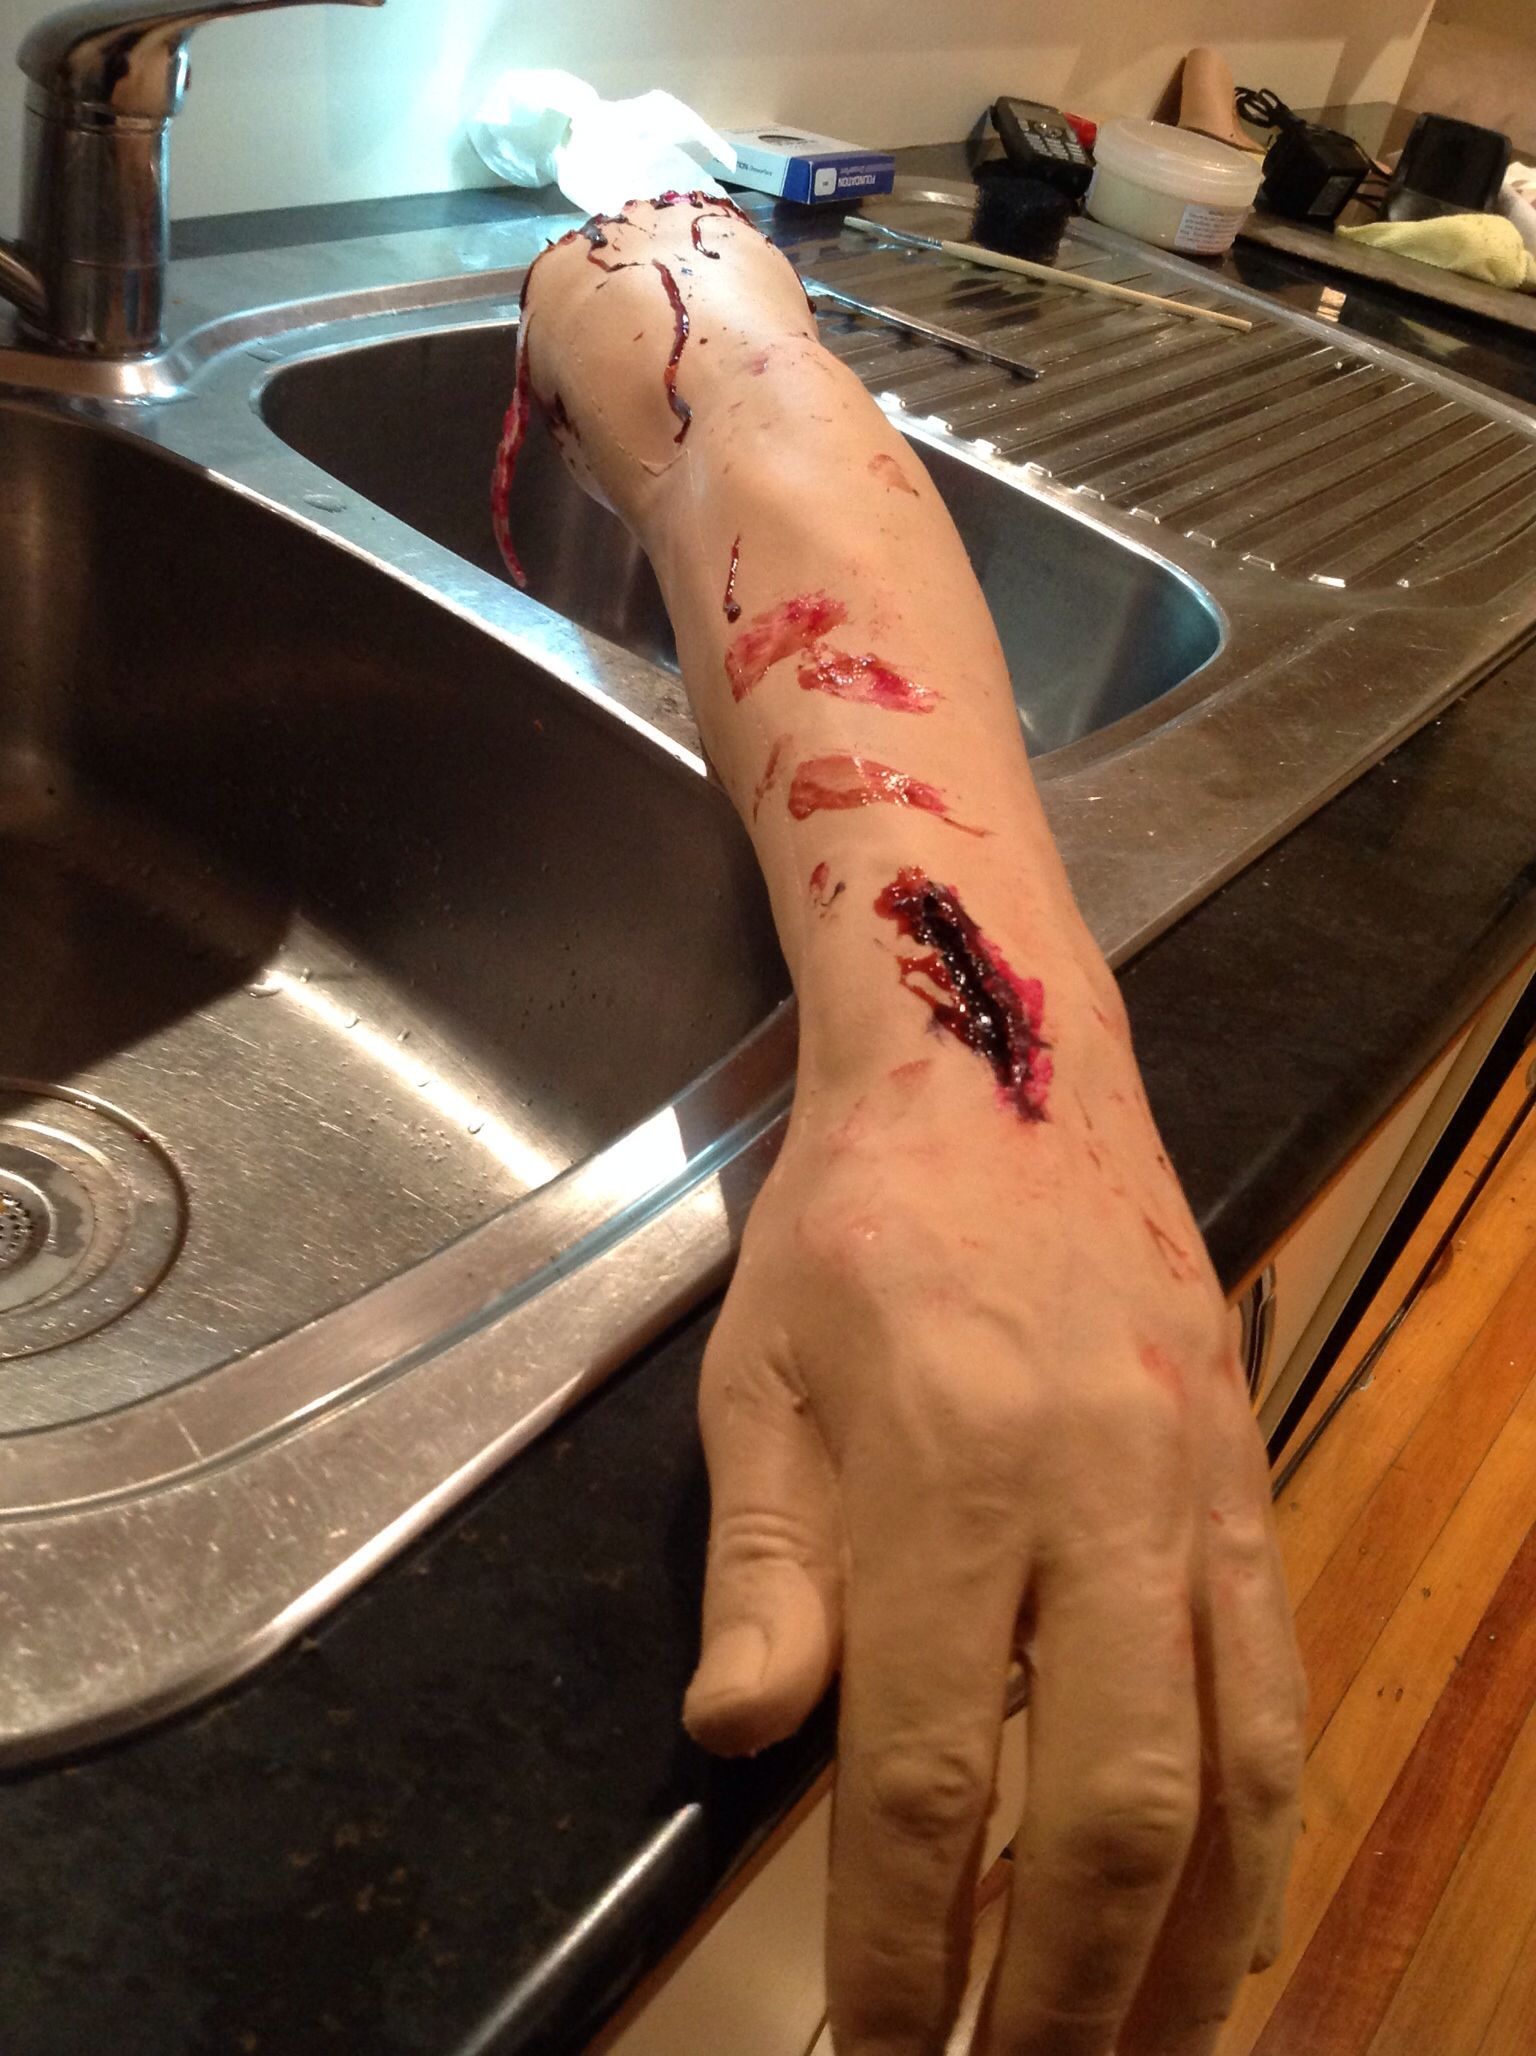 Open Wound To Back Of Hand, With Blood Stained Finger